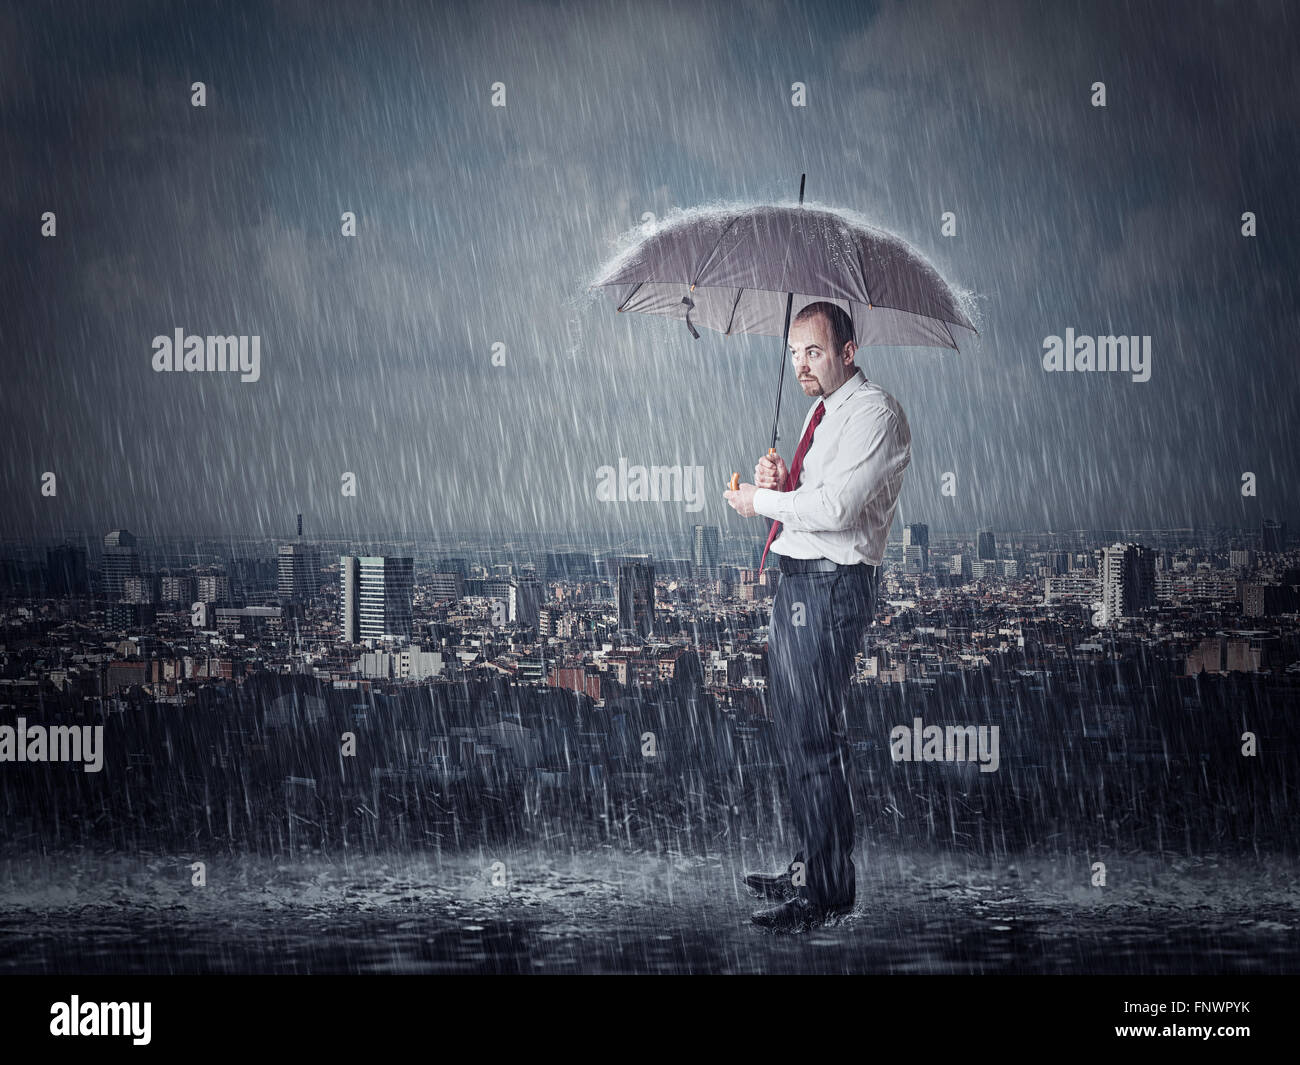 man with umbrella and heavy rain urban background - Stock Image